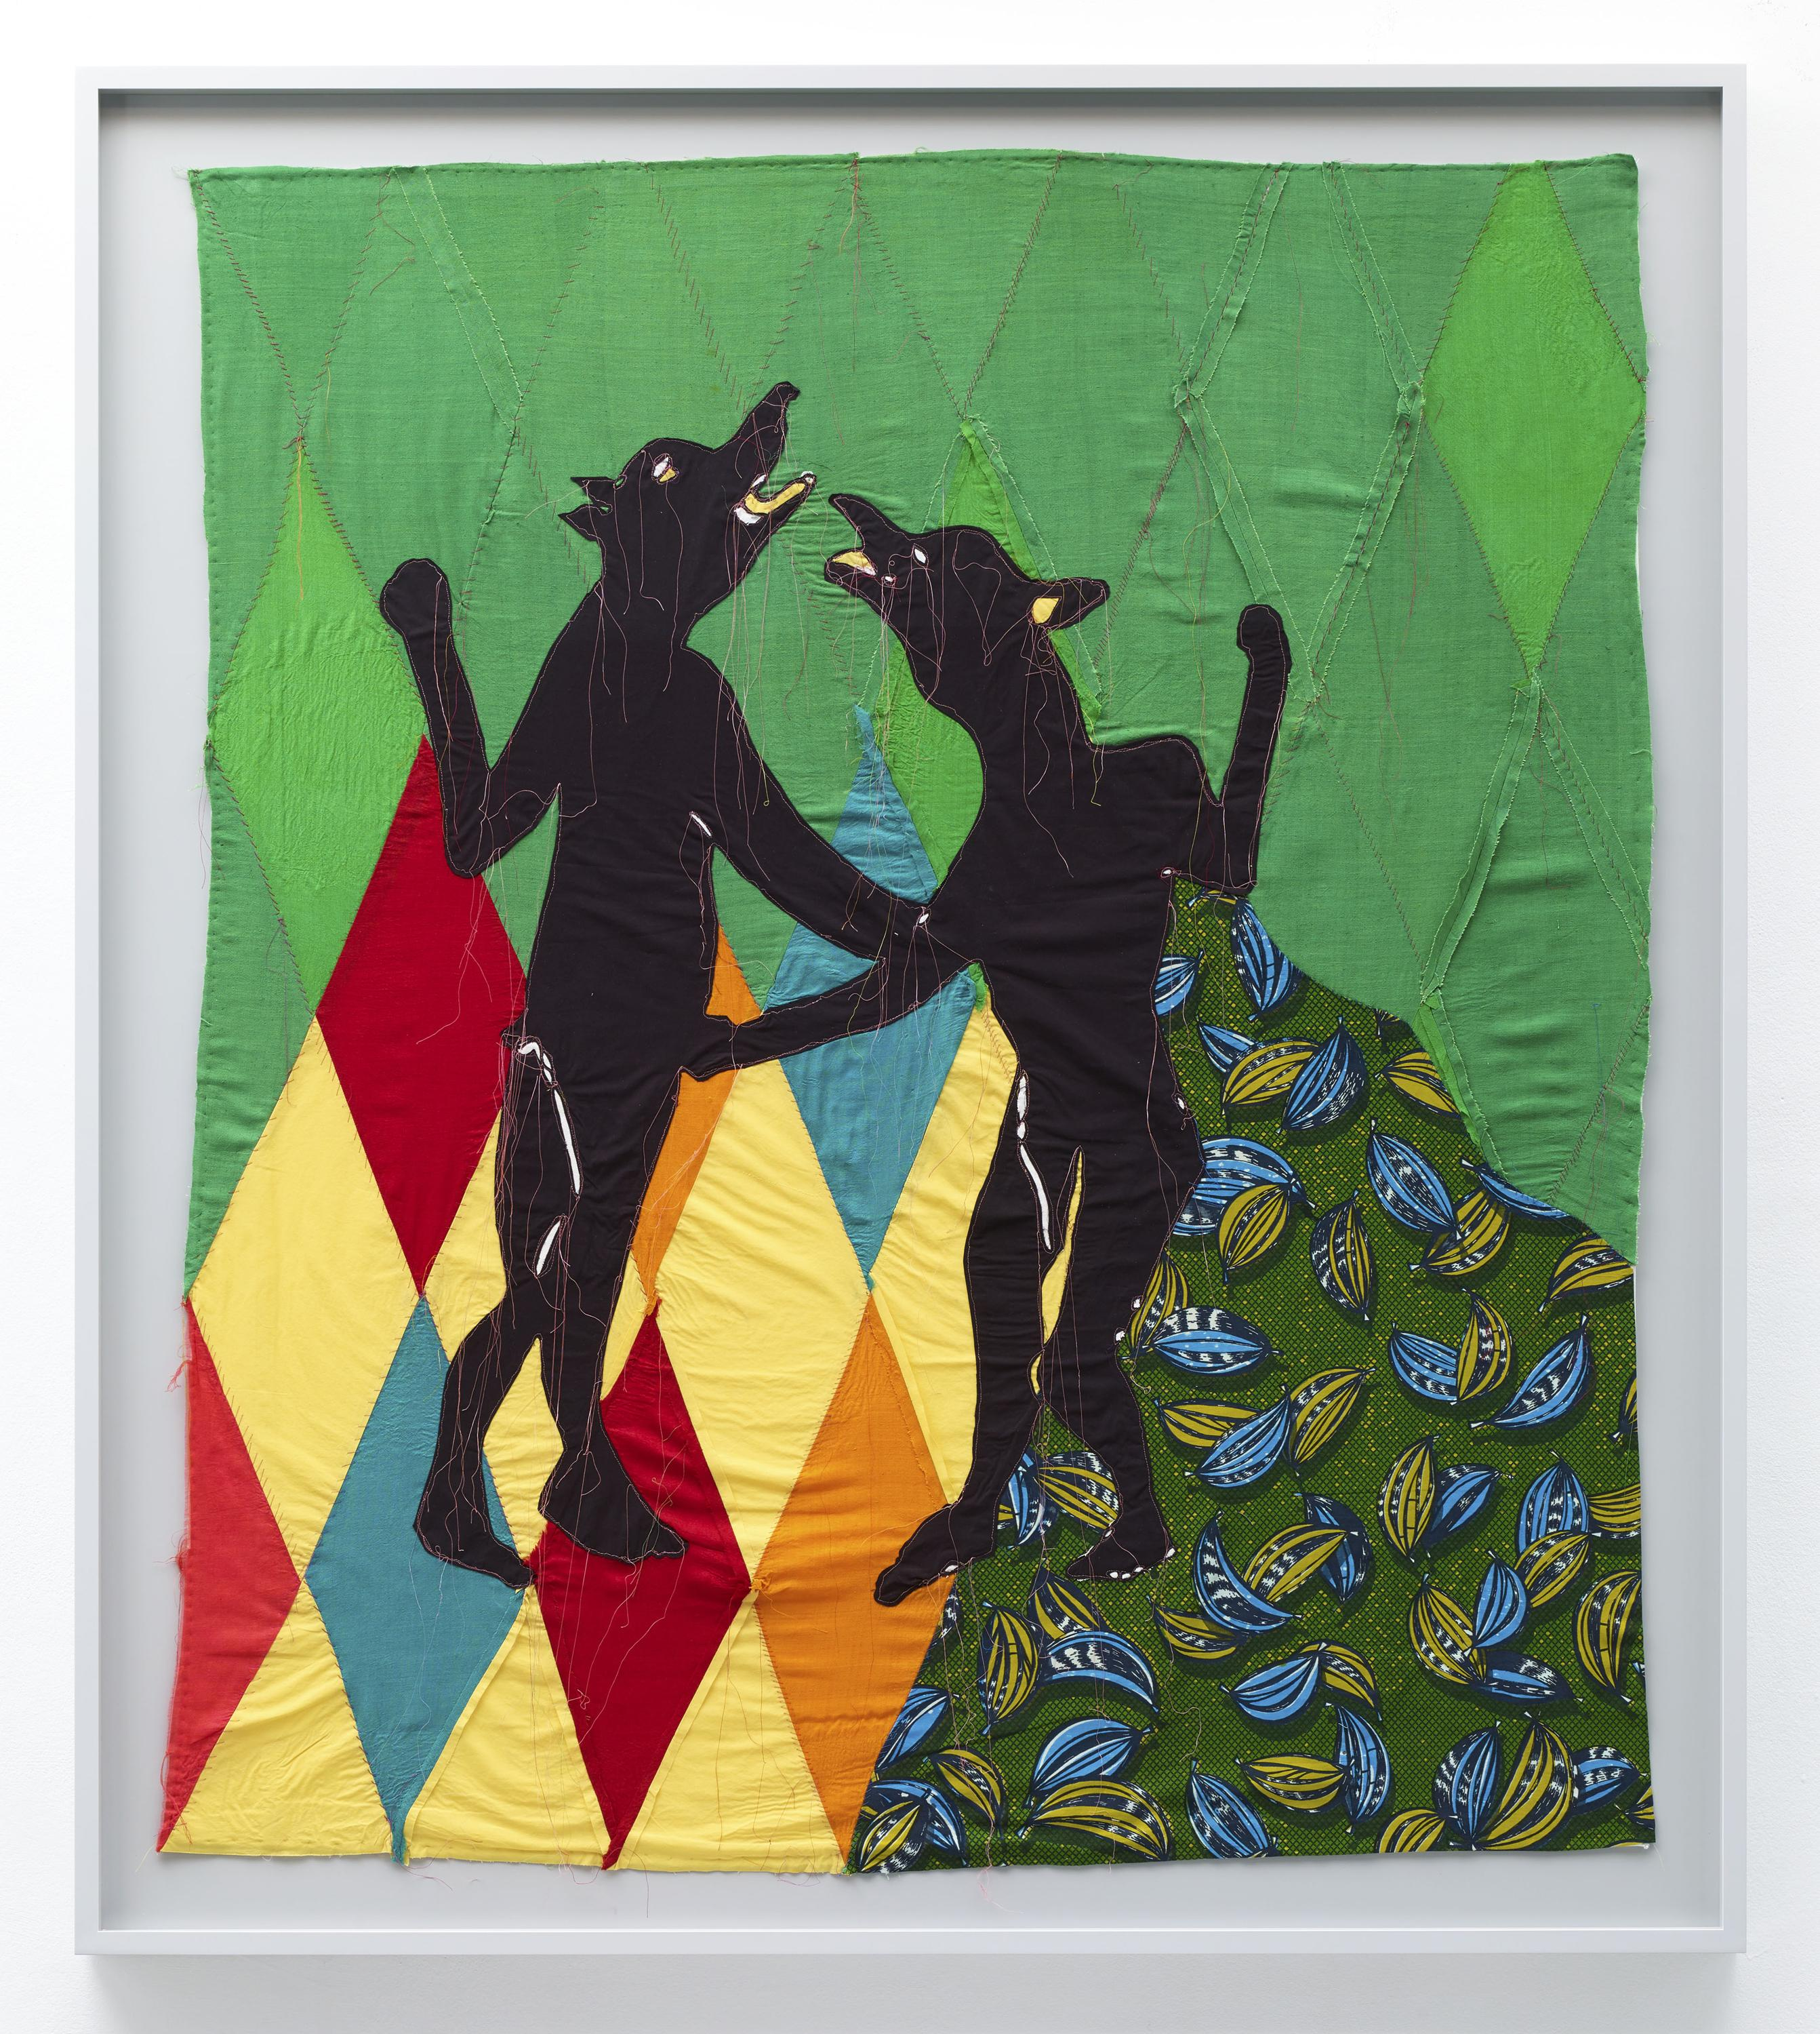 Two black figures with human bodies and dog heads appear on a patterned background of green, red, yellow, orange, and blue diamonds and section of green, light green, and blue-printed fabric.